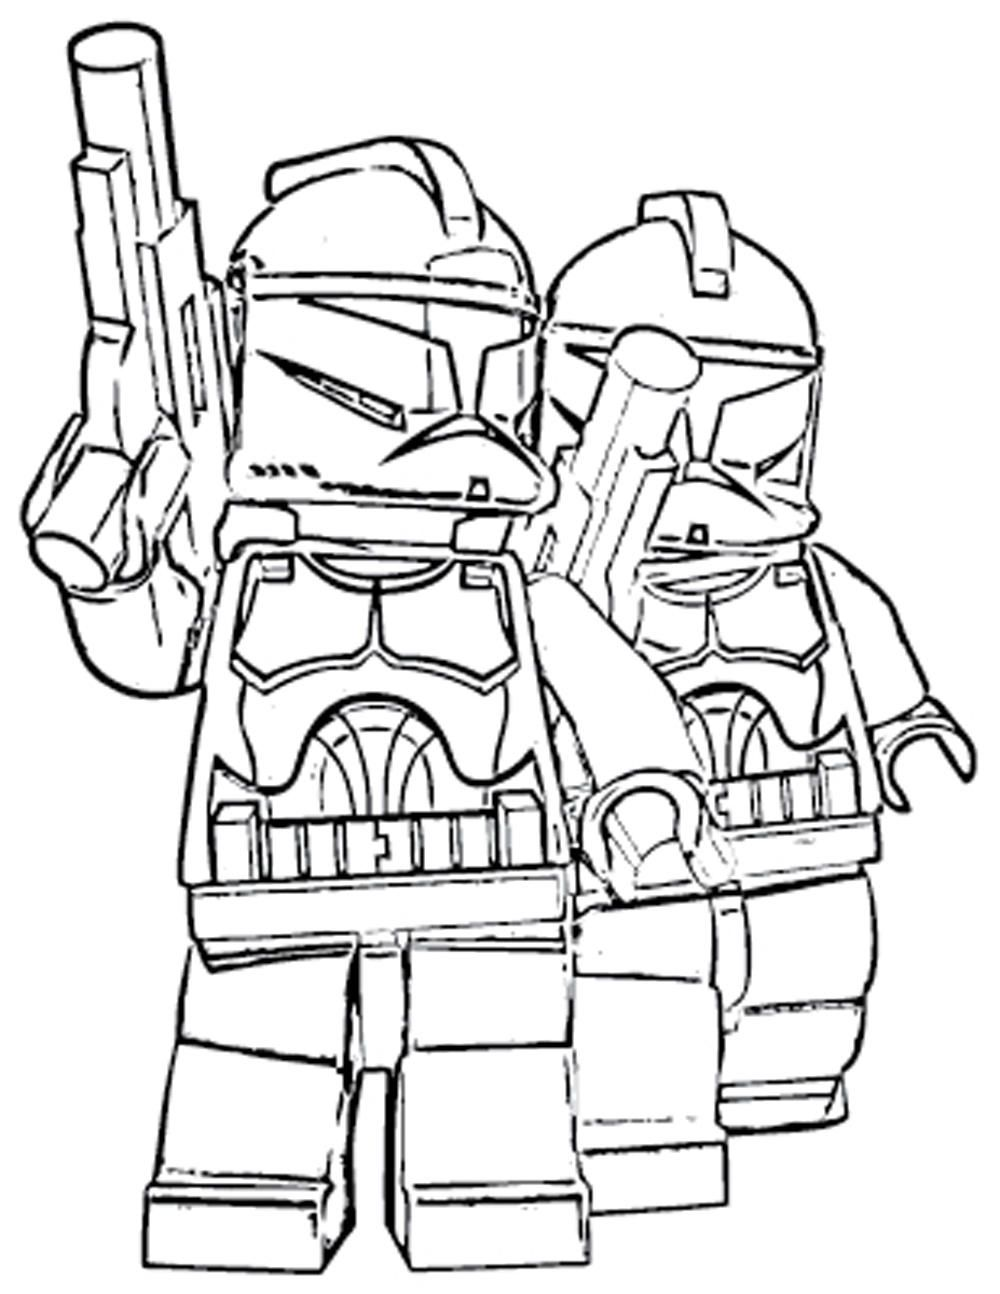 lego star wars luke skywalker coloring pages - lego city printable coloring pages coloring home